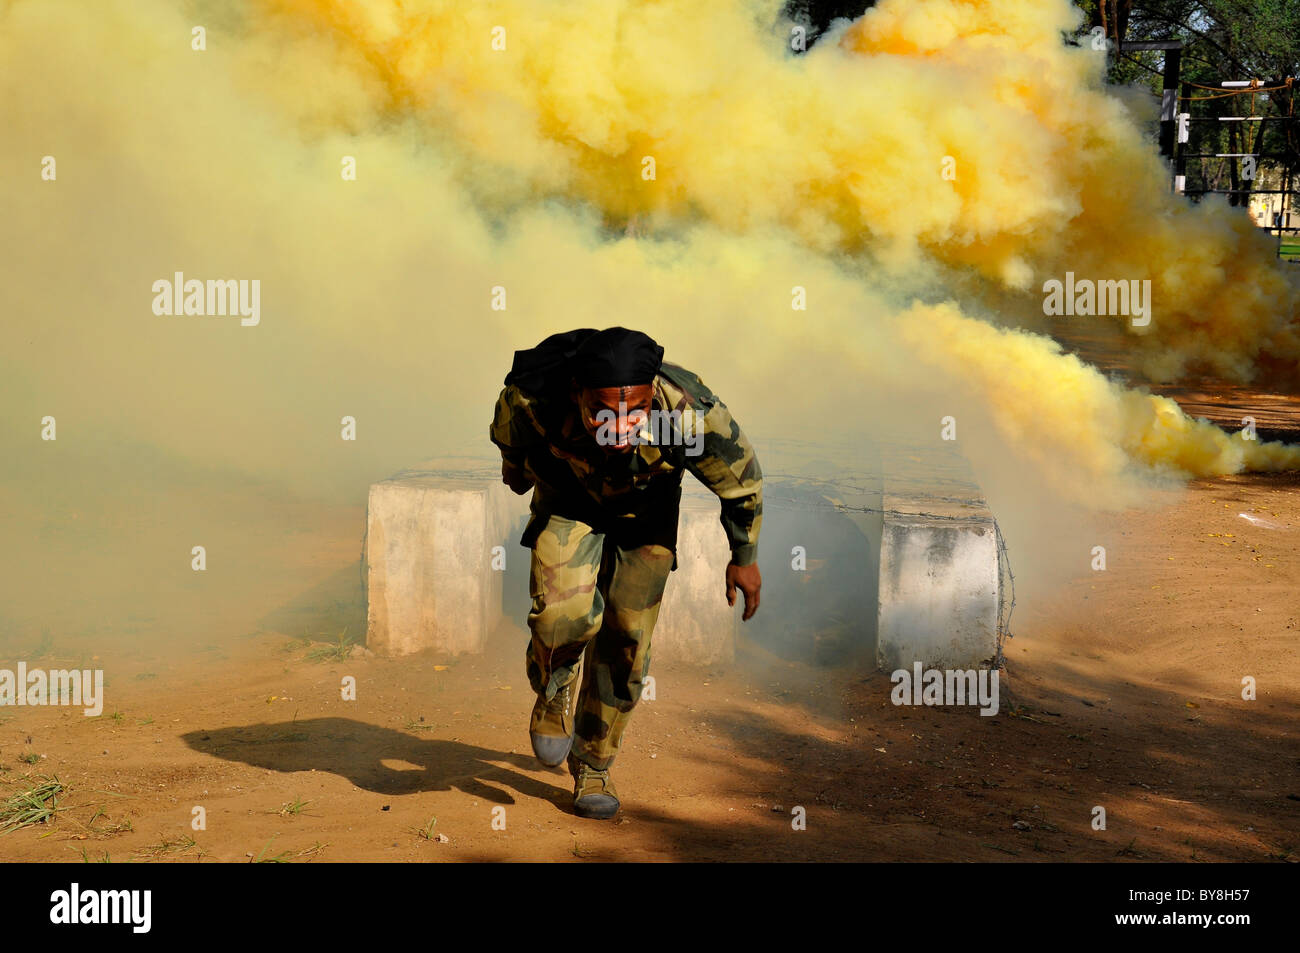 An indian anti-terrorist commando coming out of obstacle in a smoky atmosphere - Stock Image